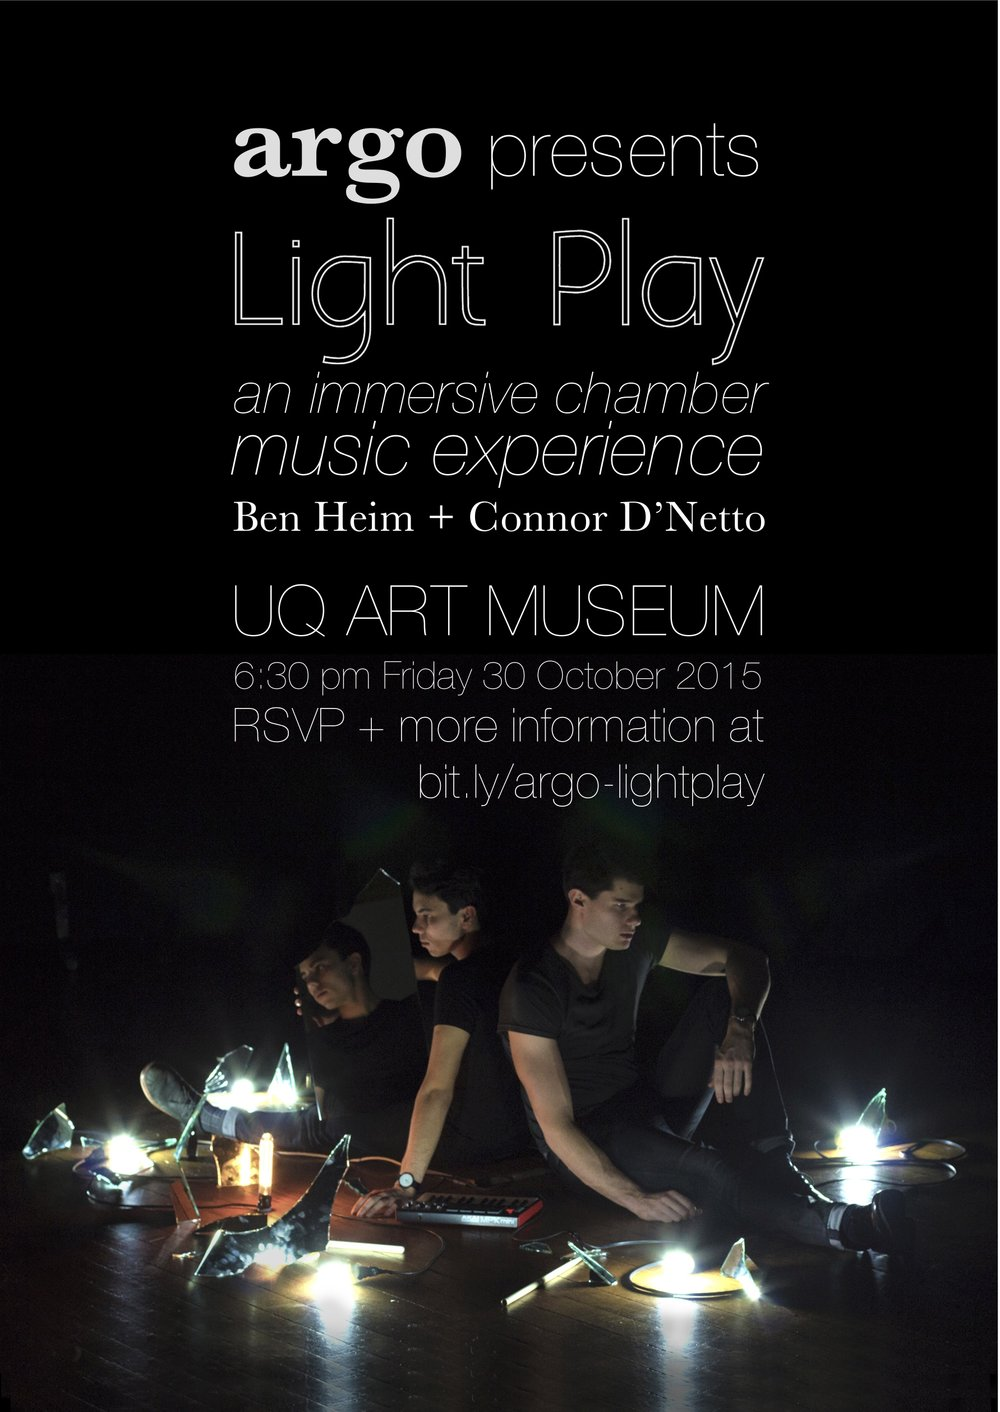 Light Play Flyer.jpg